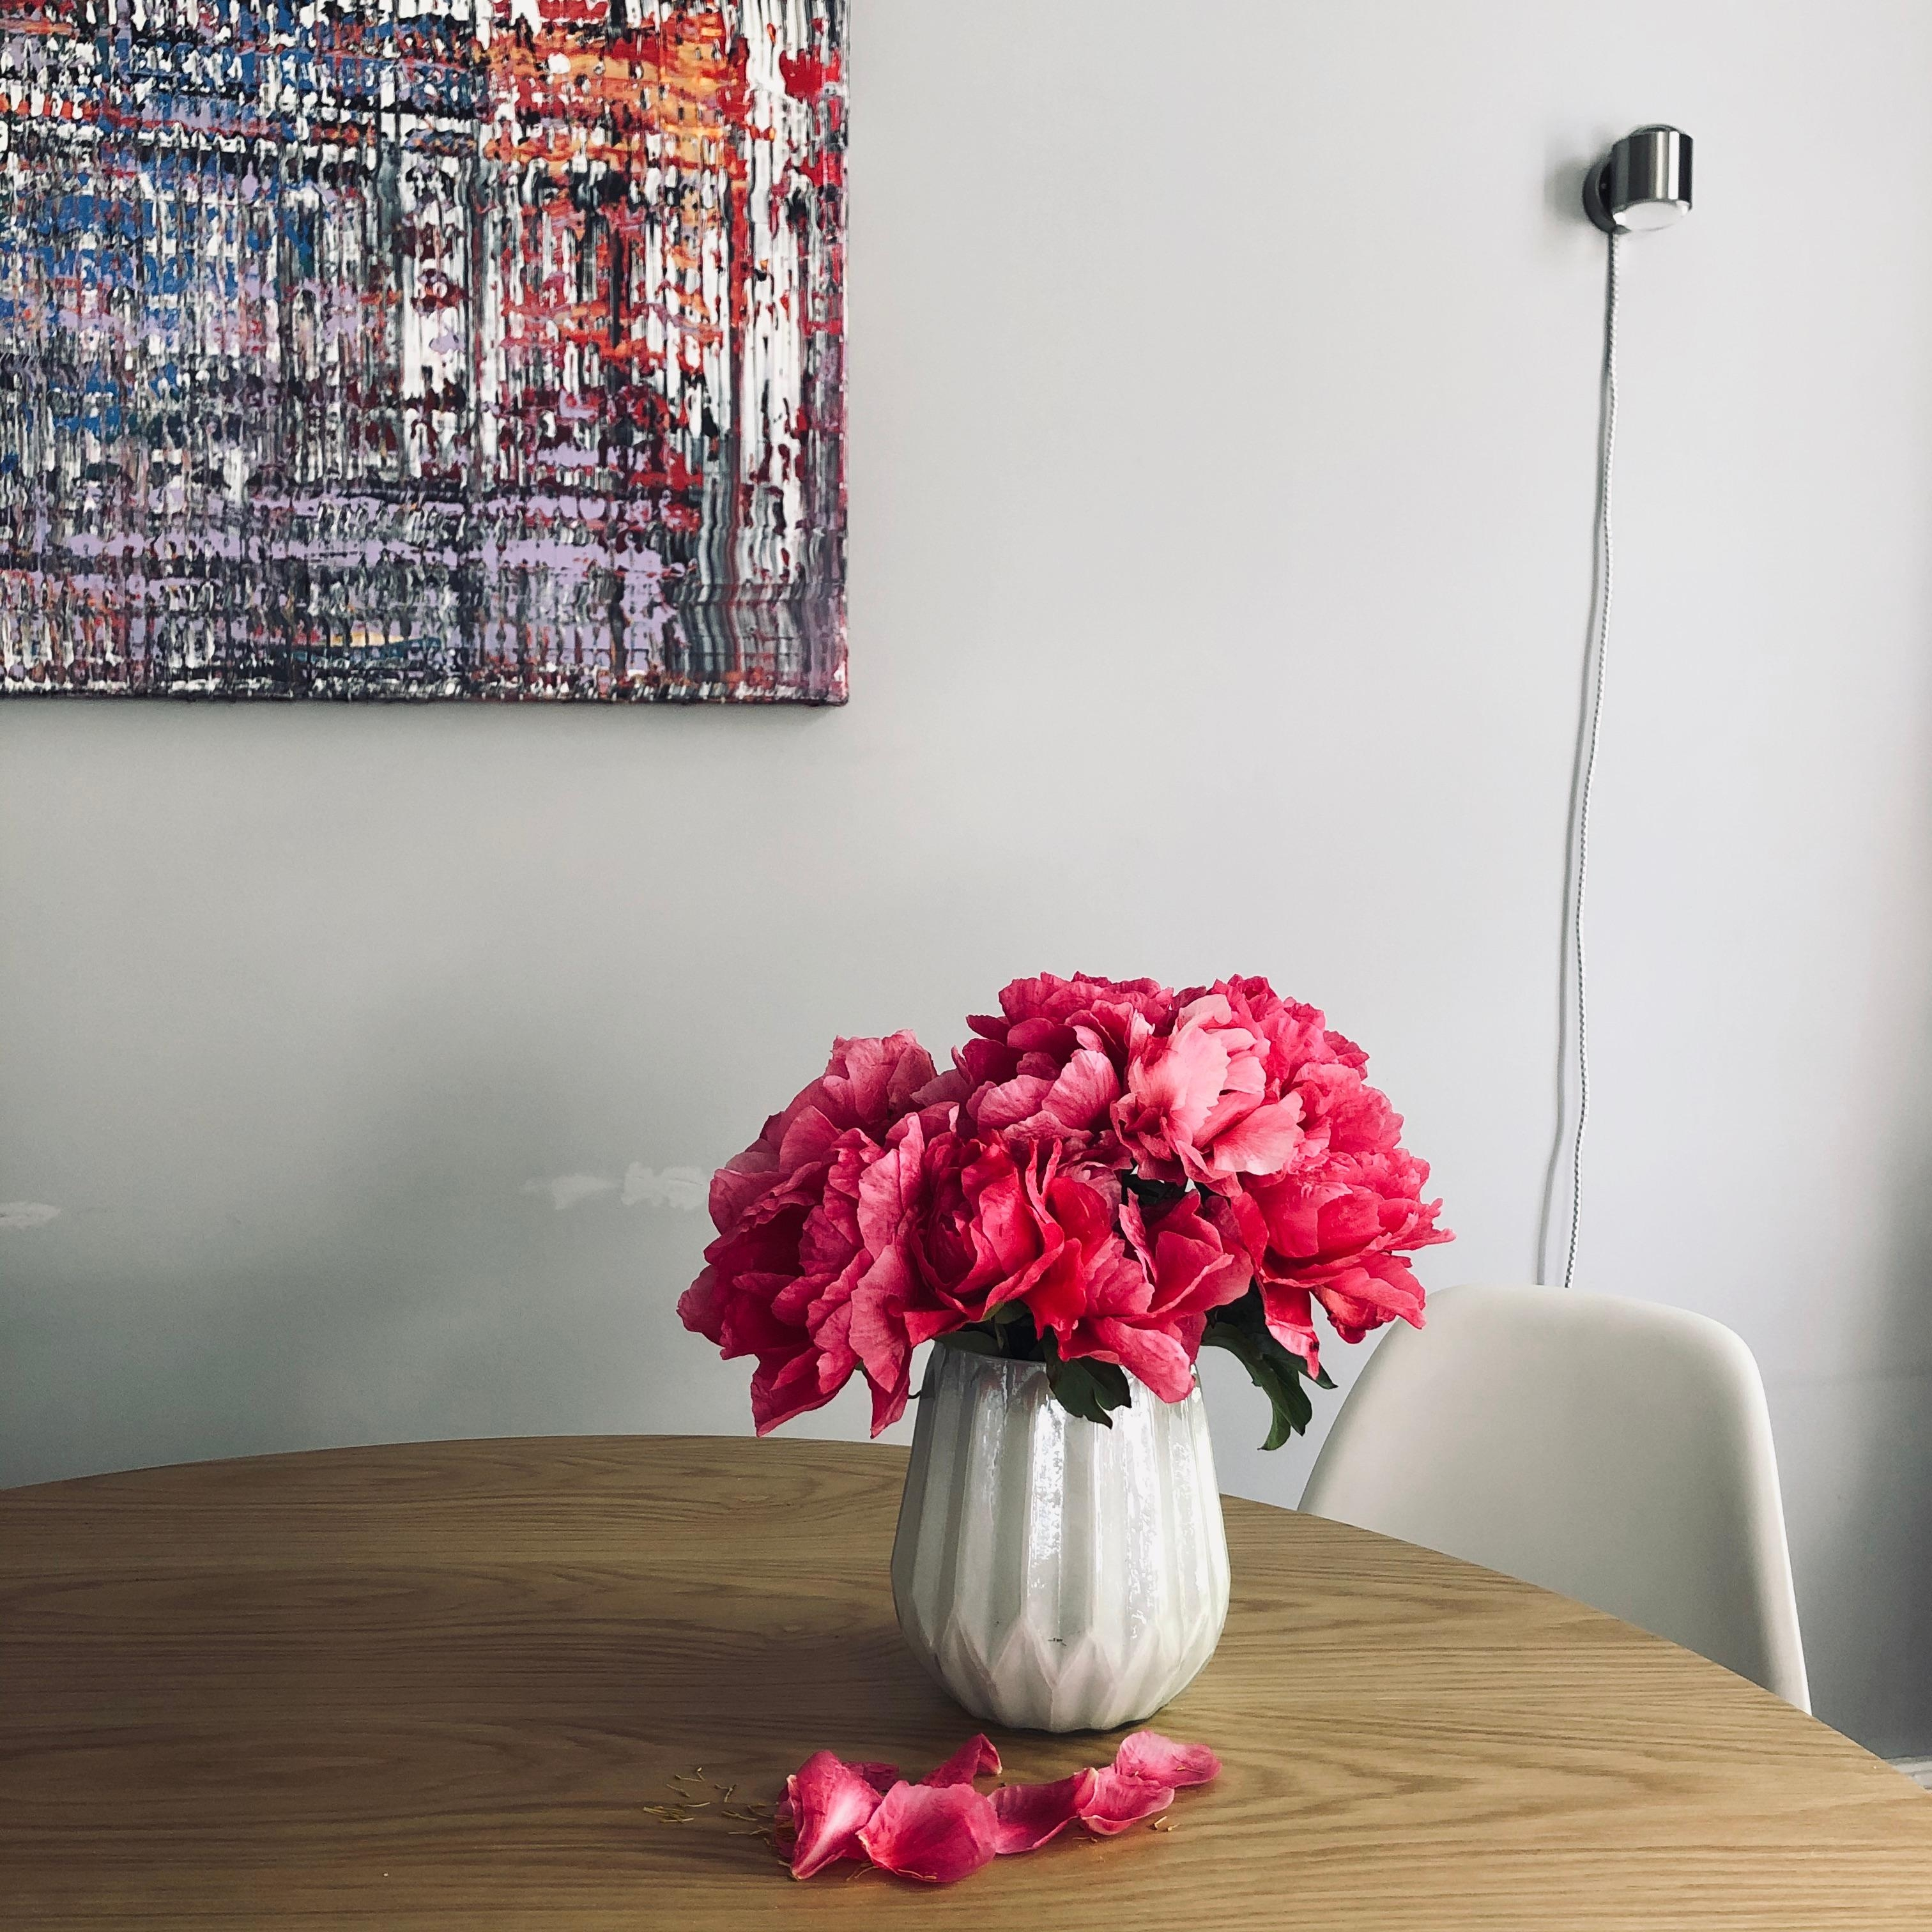 the art of slow #flowers #kunst #slowliving #onmytable #blumen